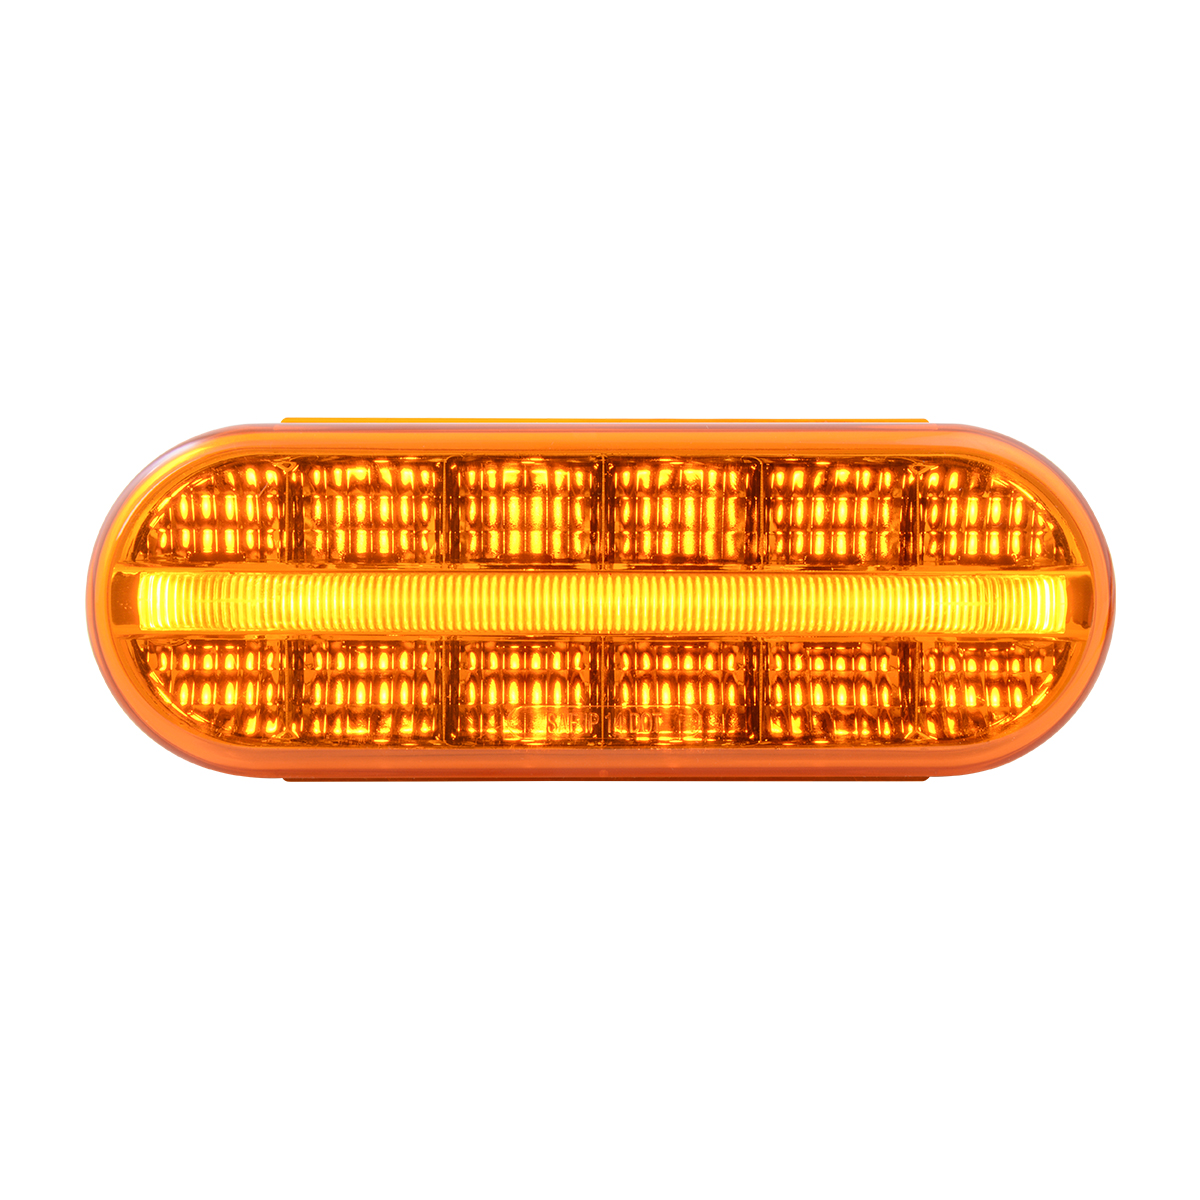 74850 Oval Prime Spyder LED Light in Amber/Amber